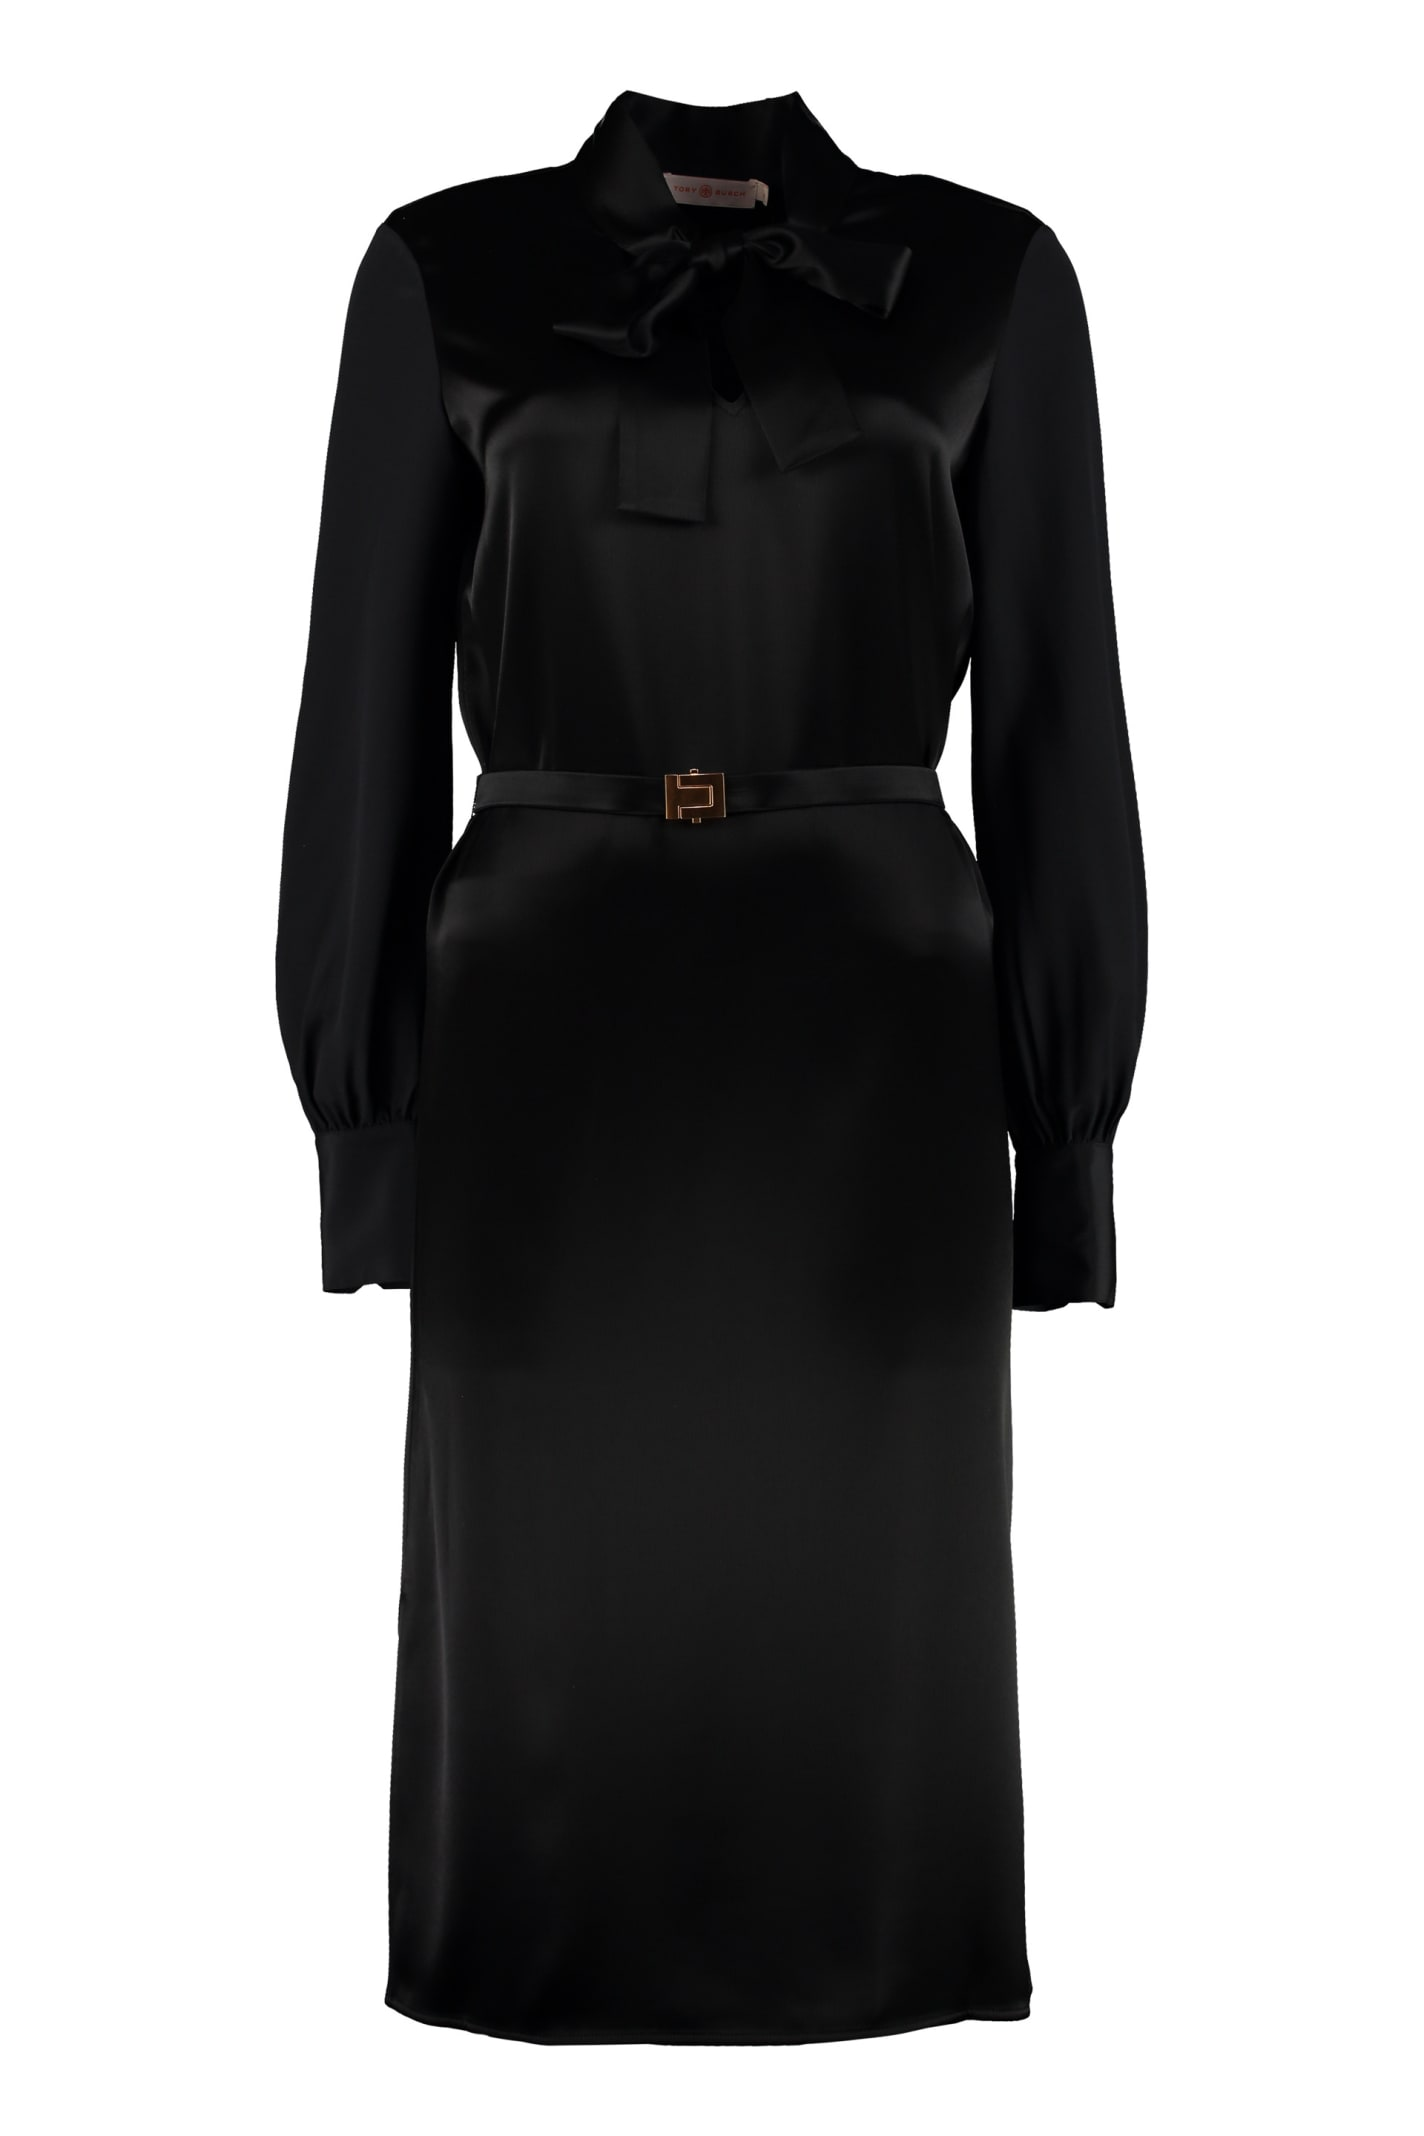 Tory Burch Belted Satin Dress